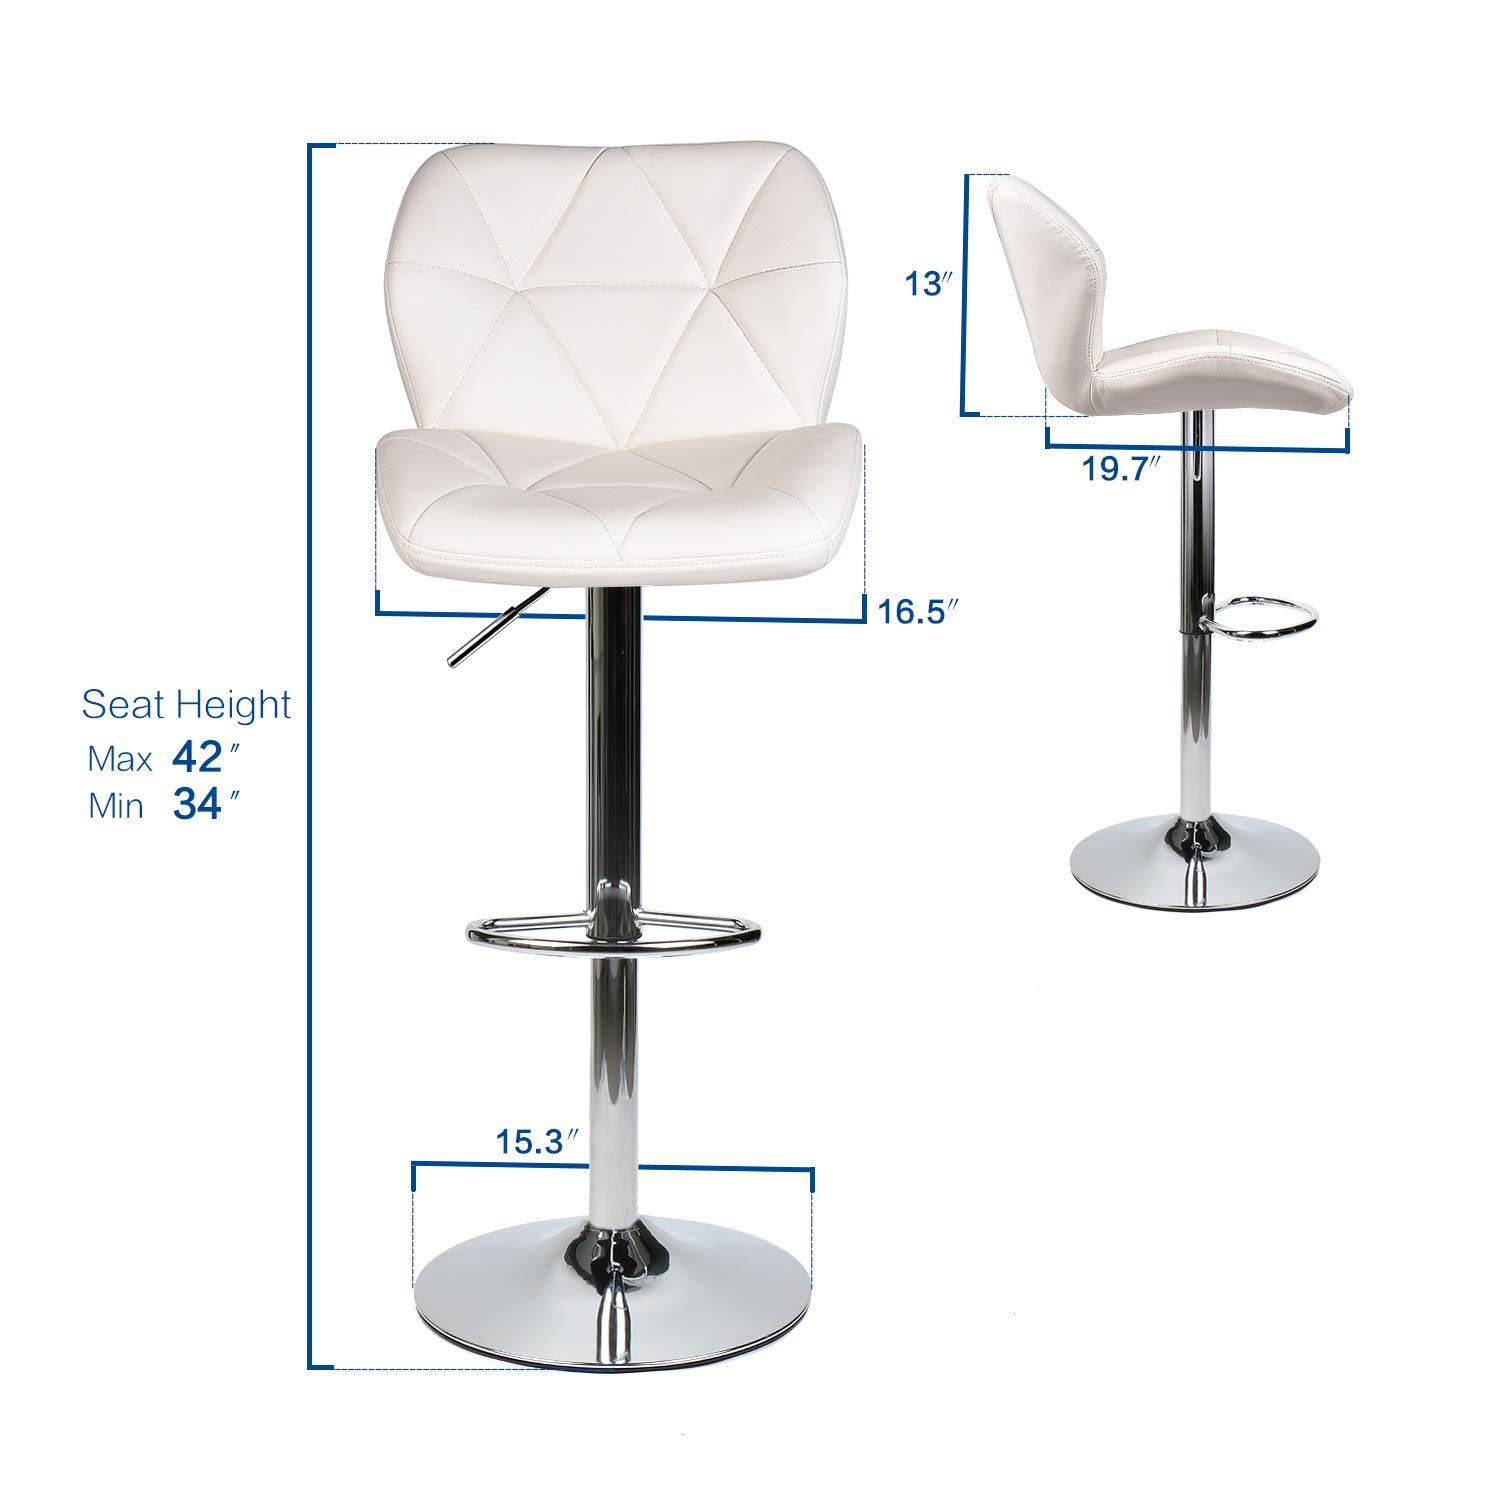 YOURLITE Pub Table Set 3 Piece 24 inch White Wood Round Table with 2 Leatherette Chairs Height Adjustable White Barstools and Marble Stripe Pub Table